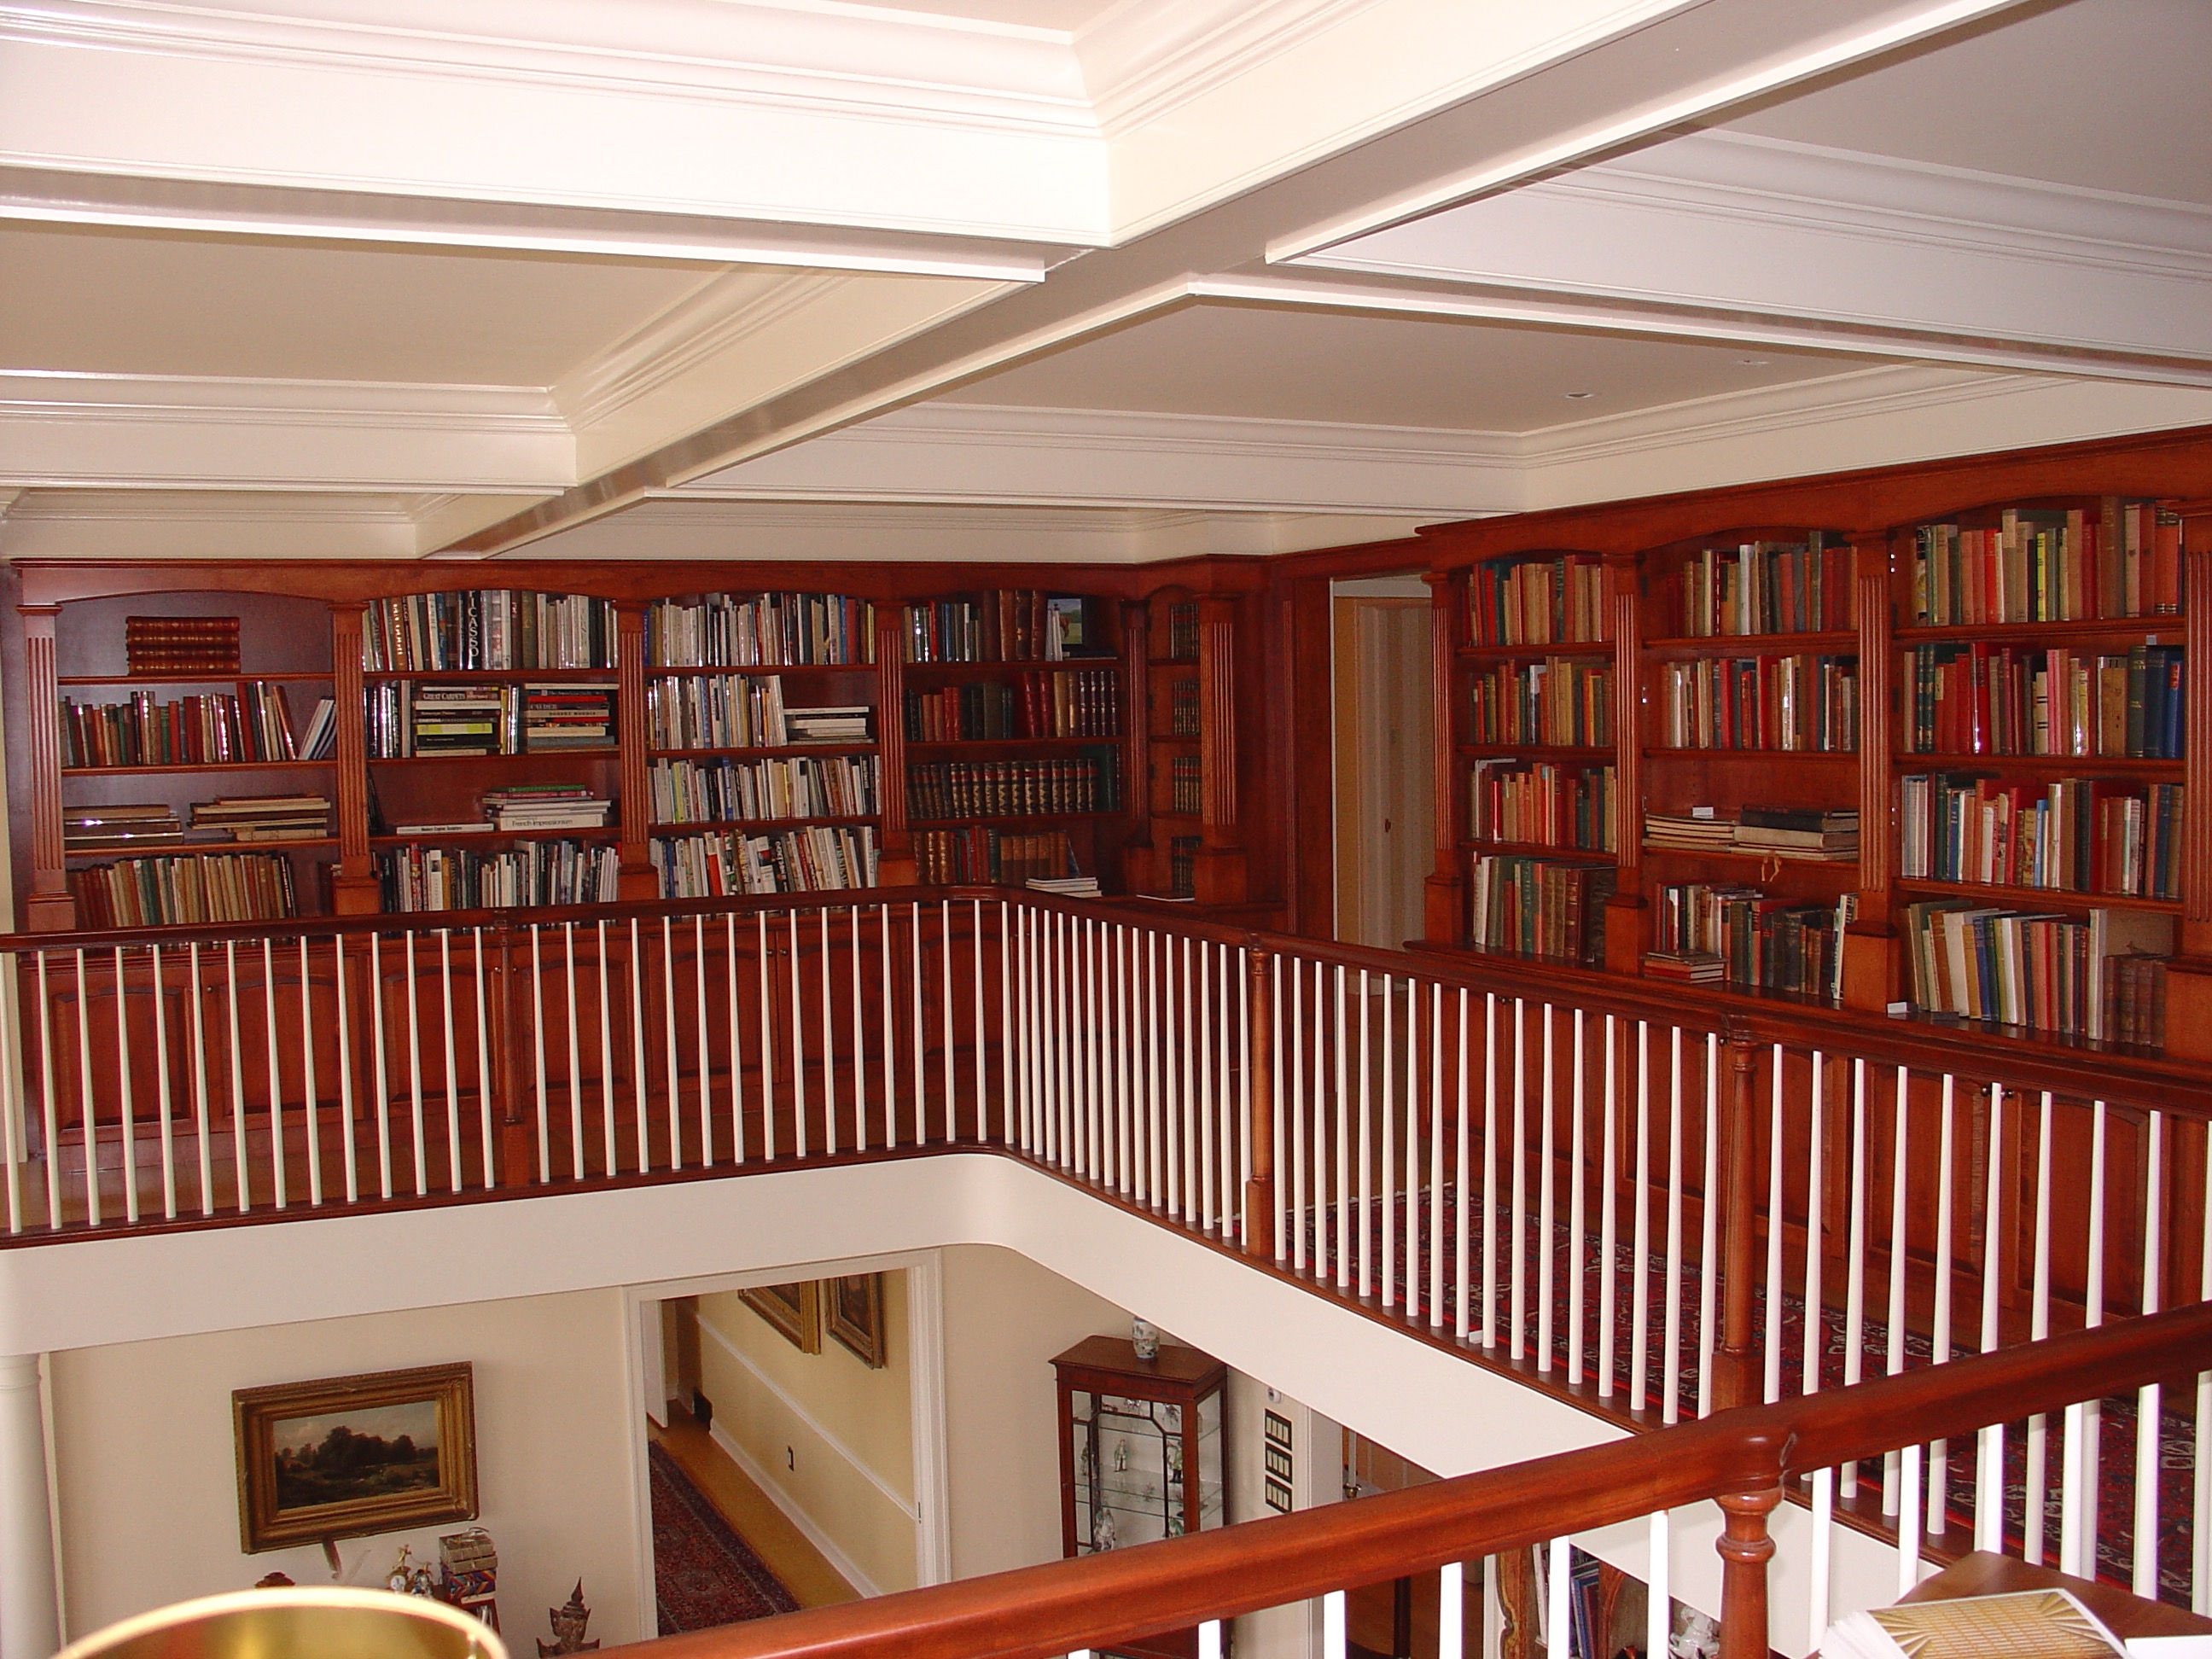 Library built on a mezzanine